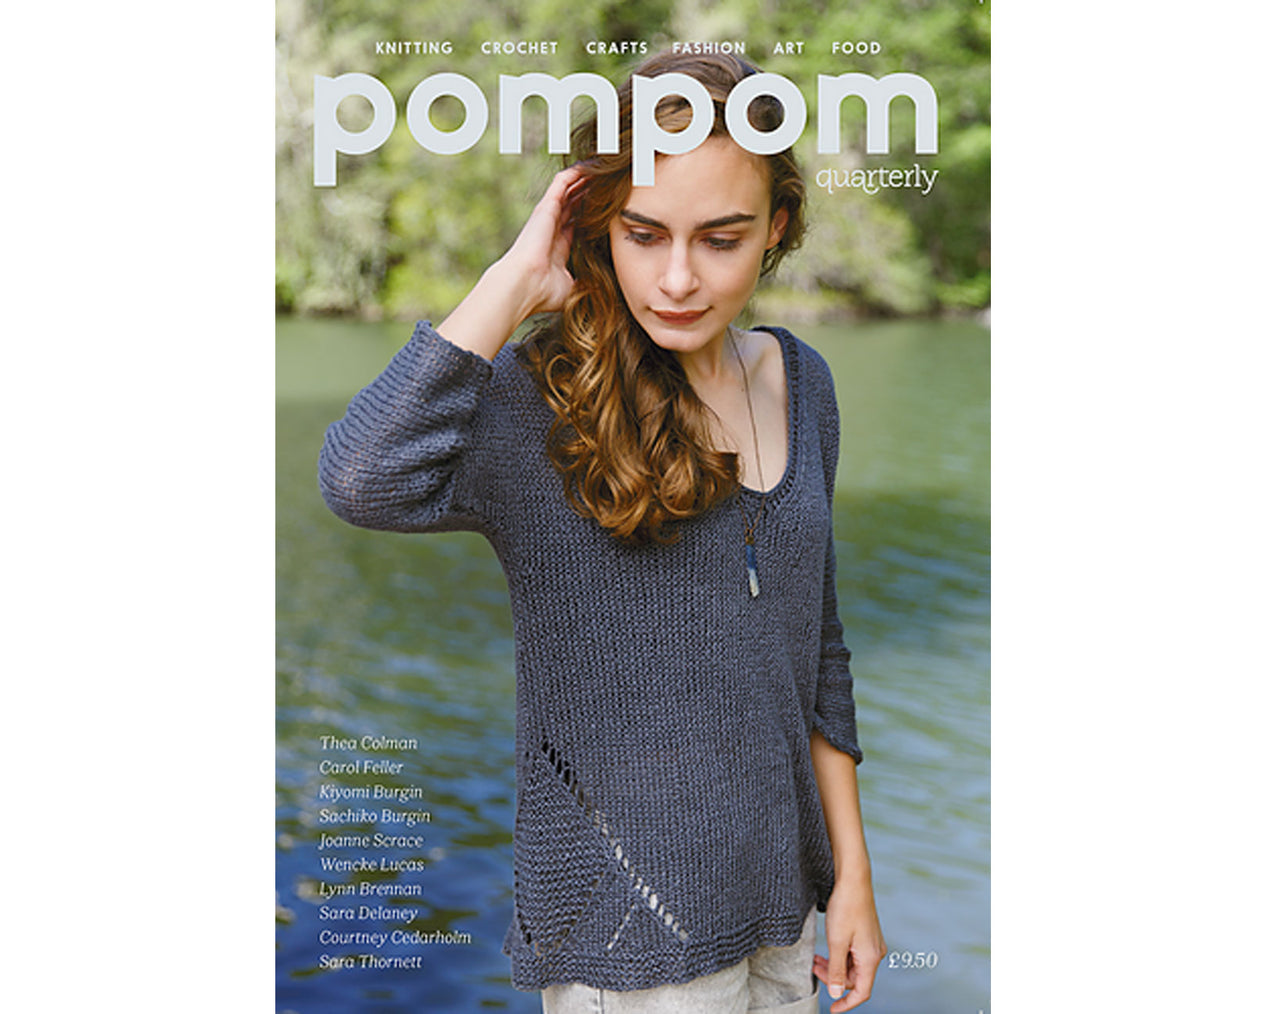 pompom quarterly - Issue 17 - Summer 2016